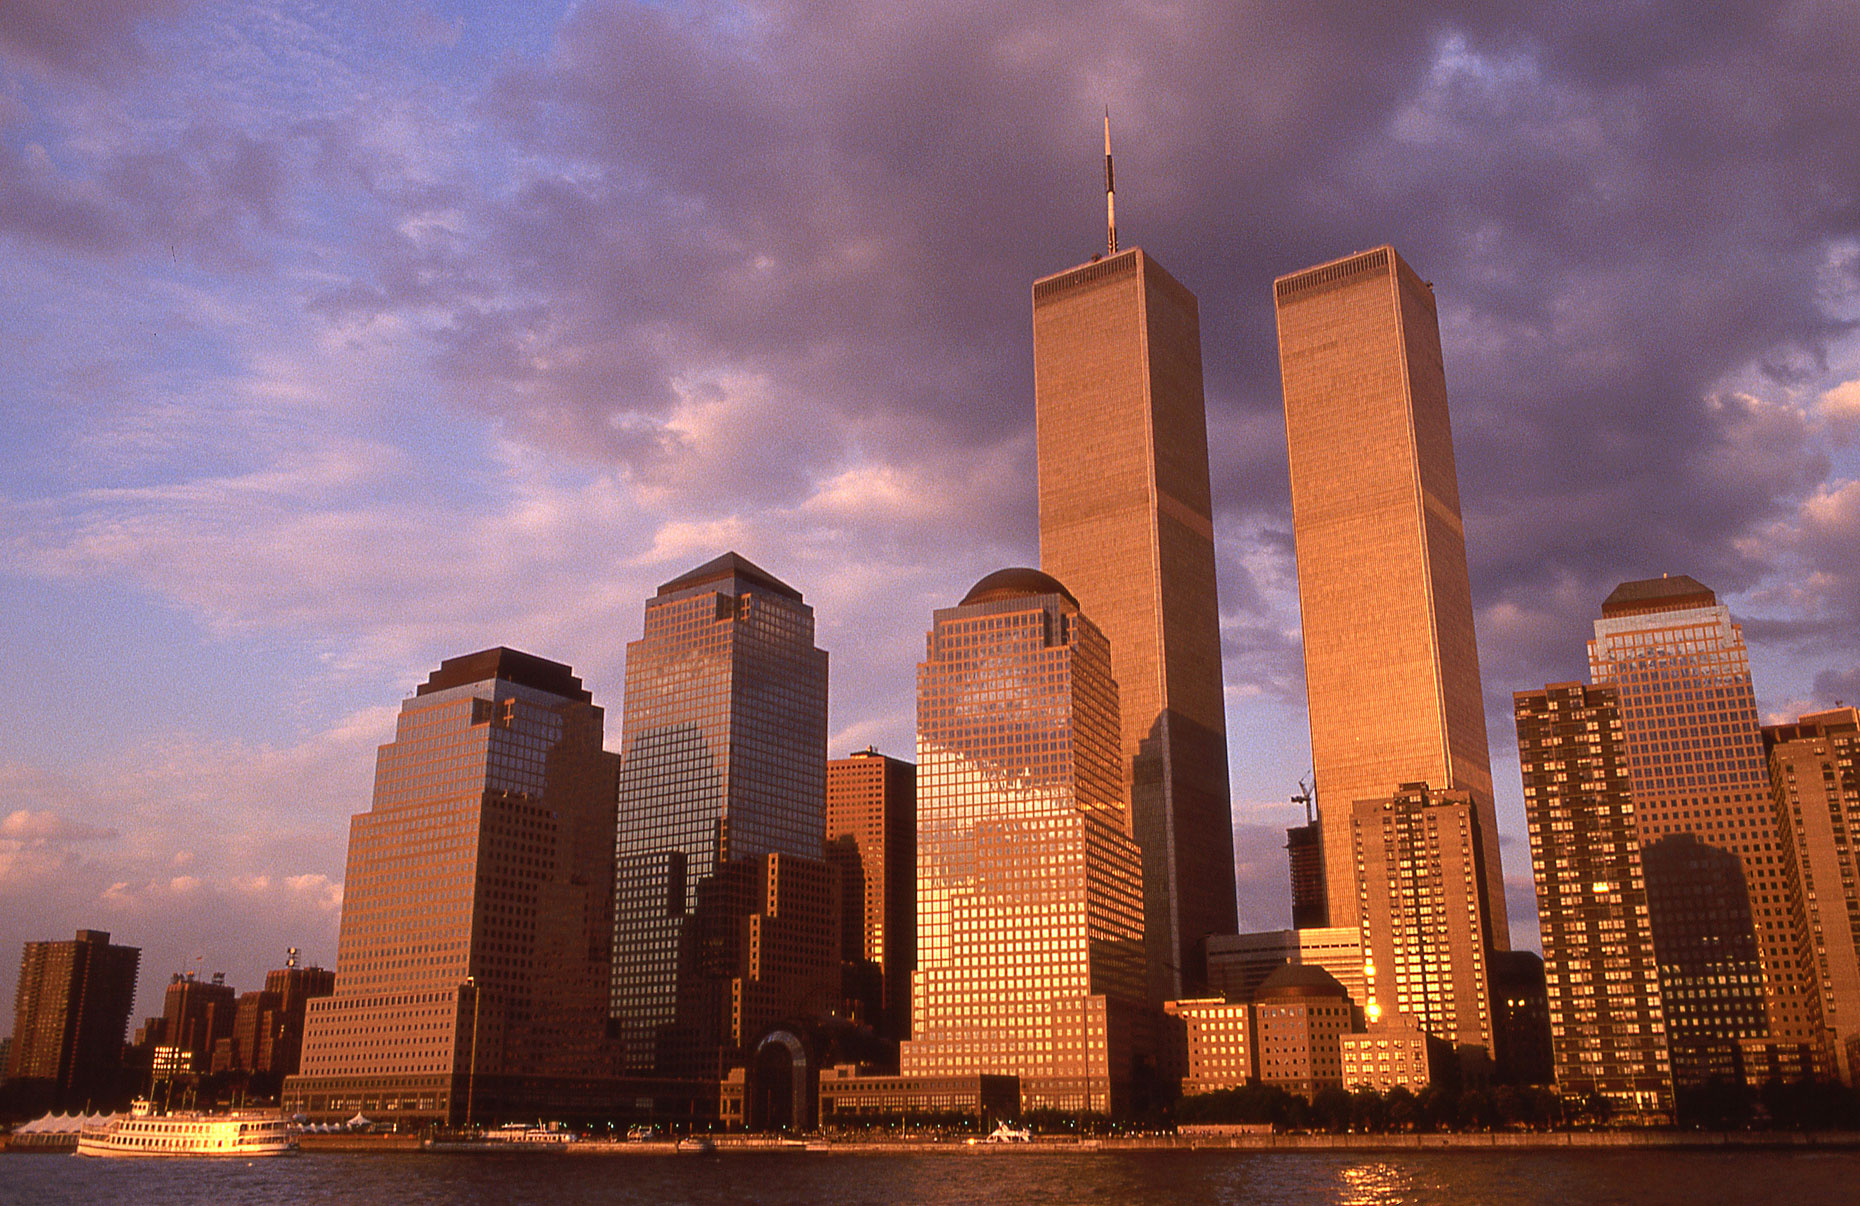 World Trade Center, John Annerino, LIFE Magazine, LIFE Books, One Nation, America Remembers September 11, 2001